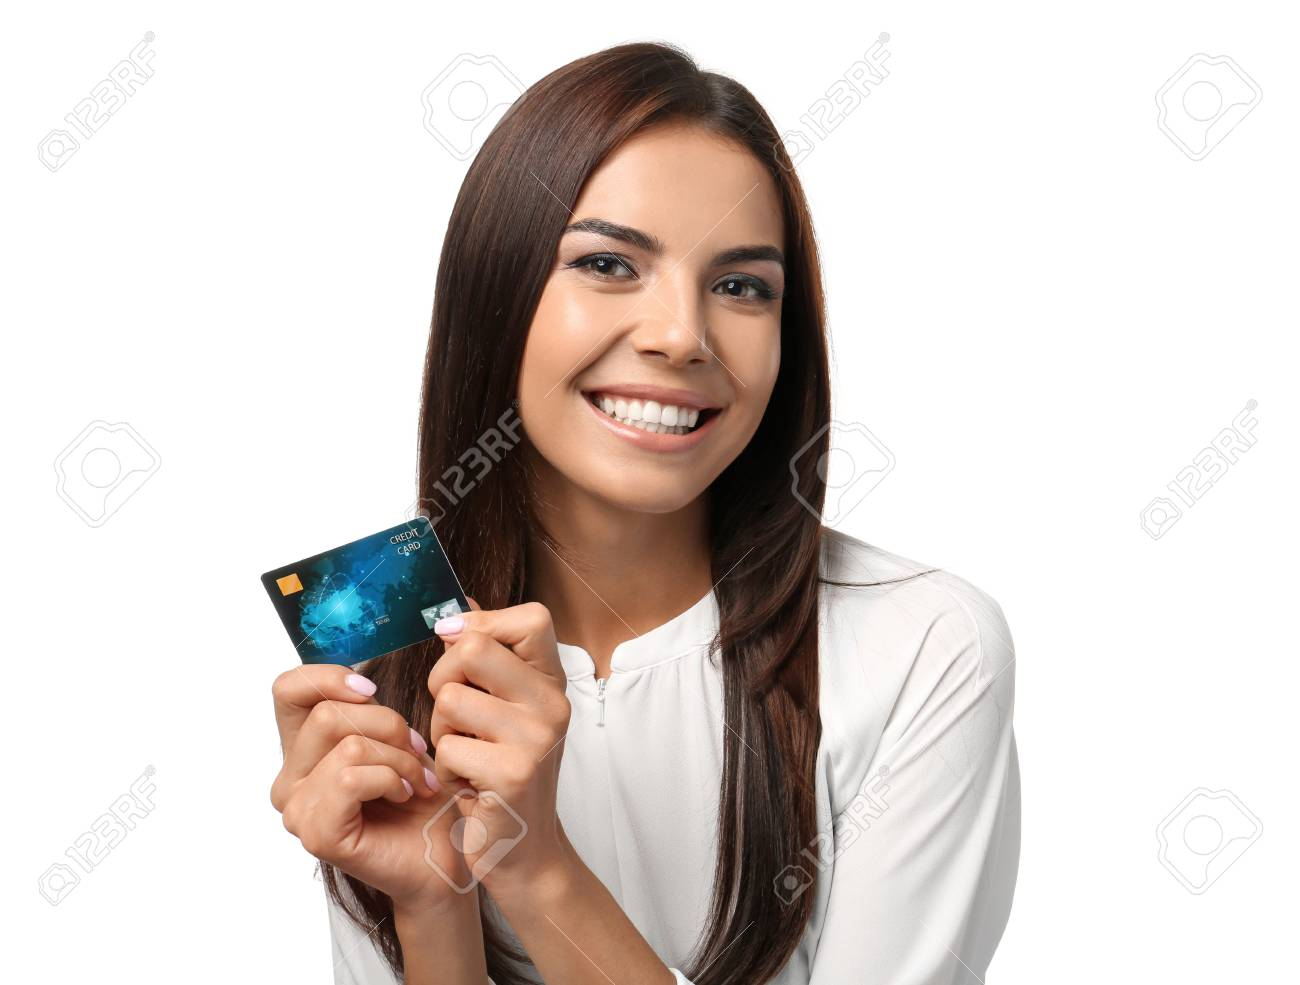 Young woman with credit card on white background. Online shopping - 117991889